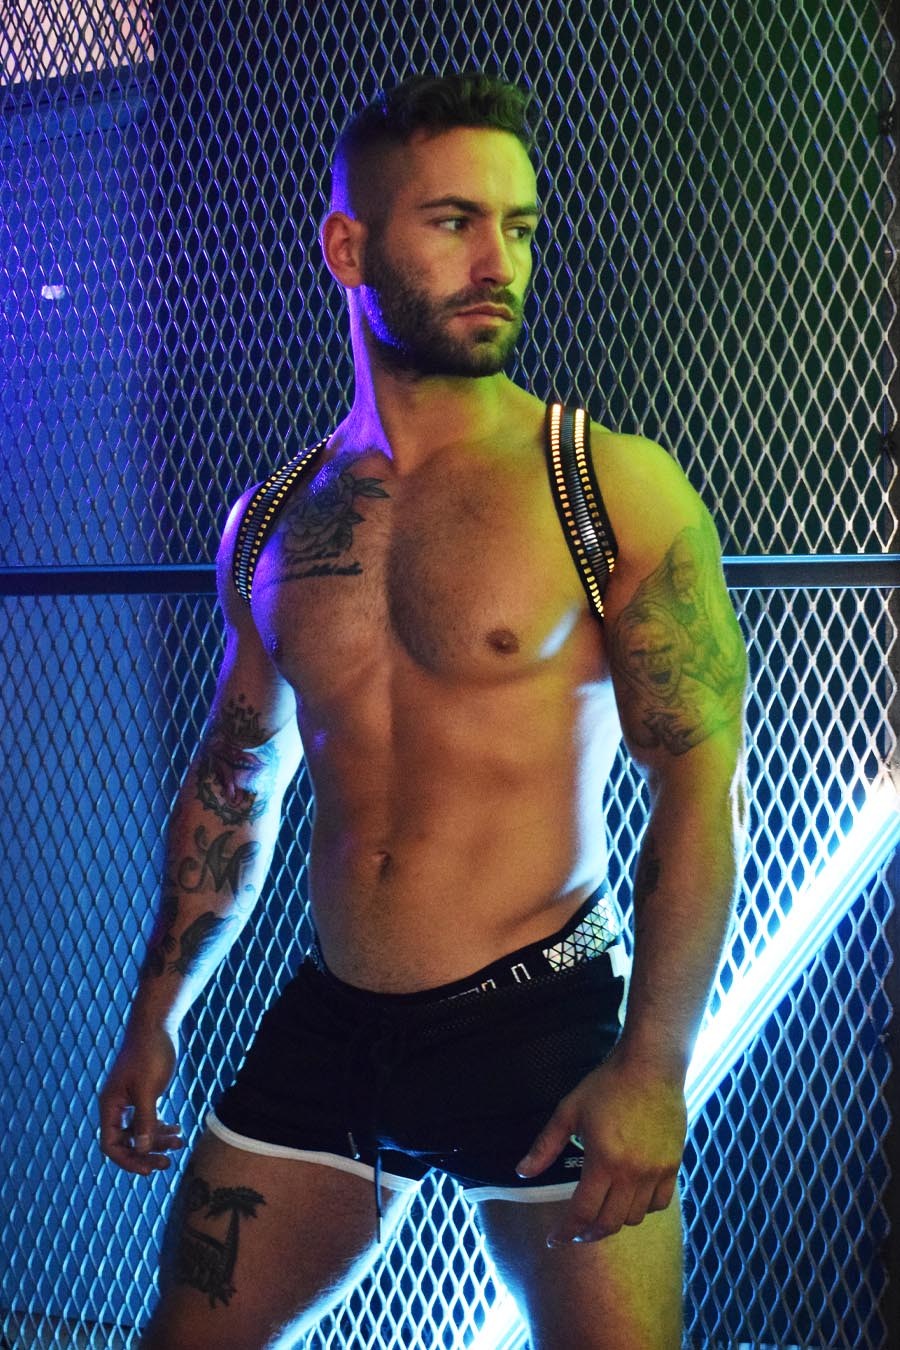 MIRROR GLOW SHOULDER HARNESS